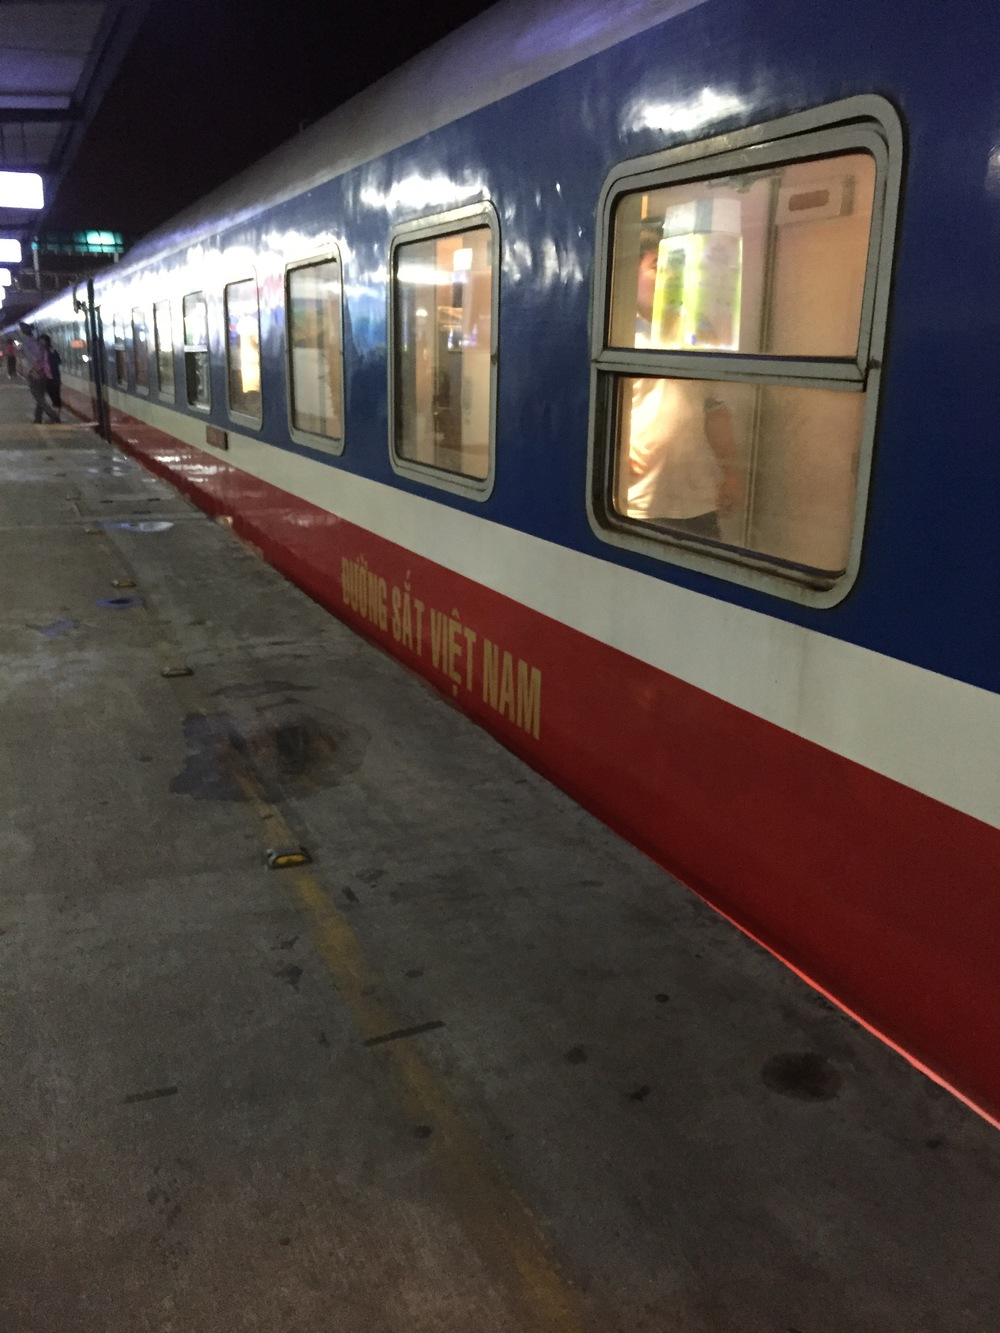 We traveled overnight on very basic train from Hanoi to the city of Hue.